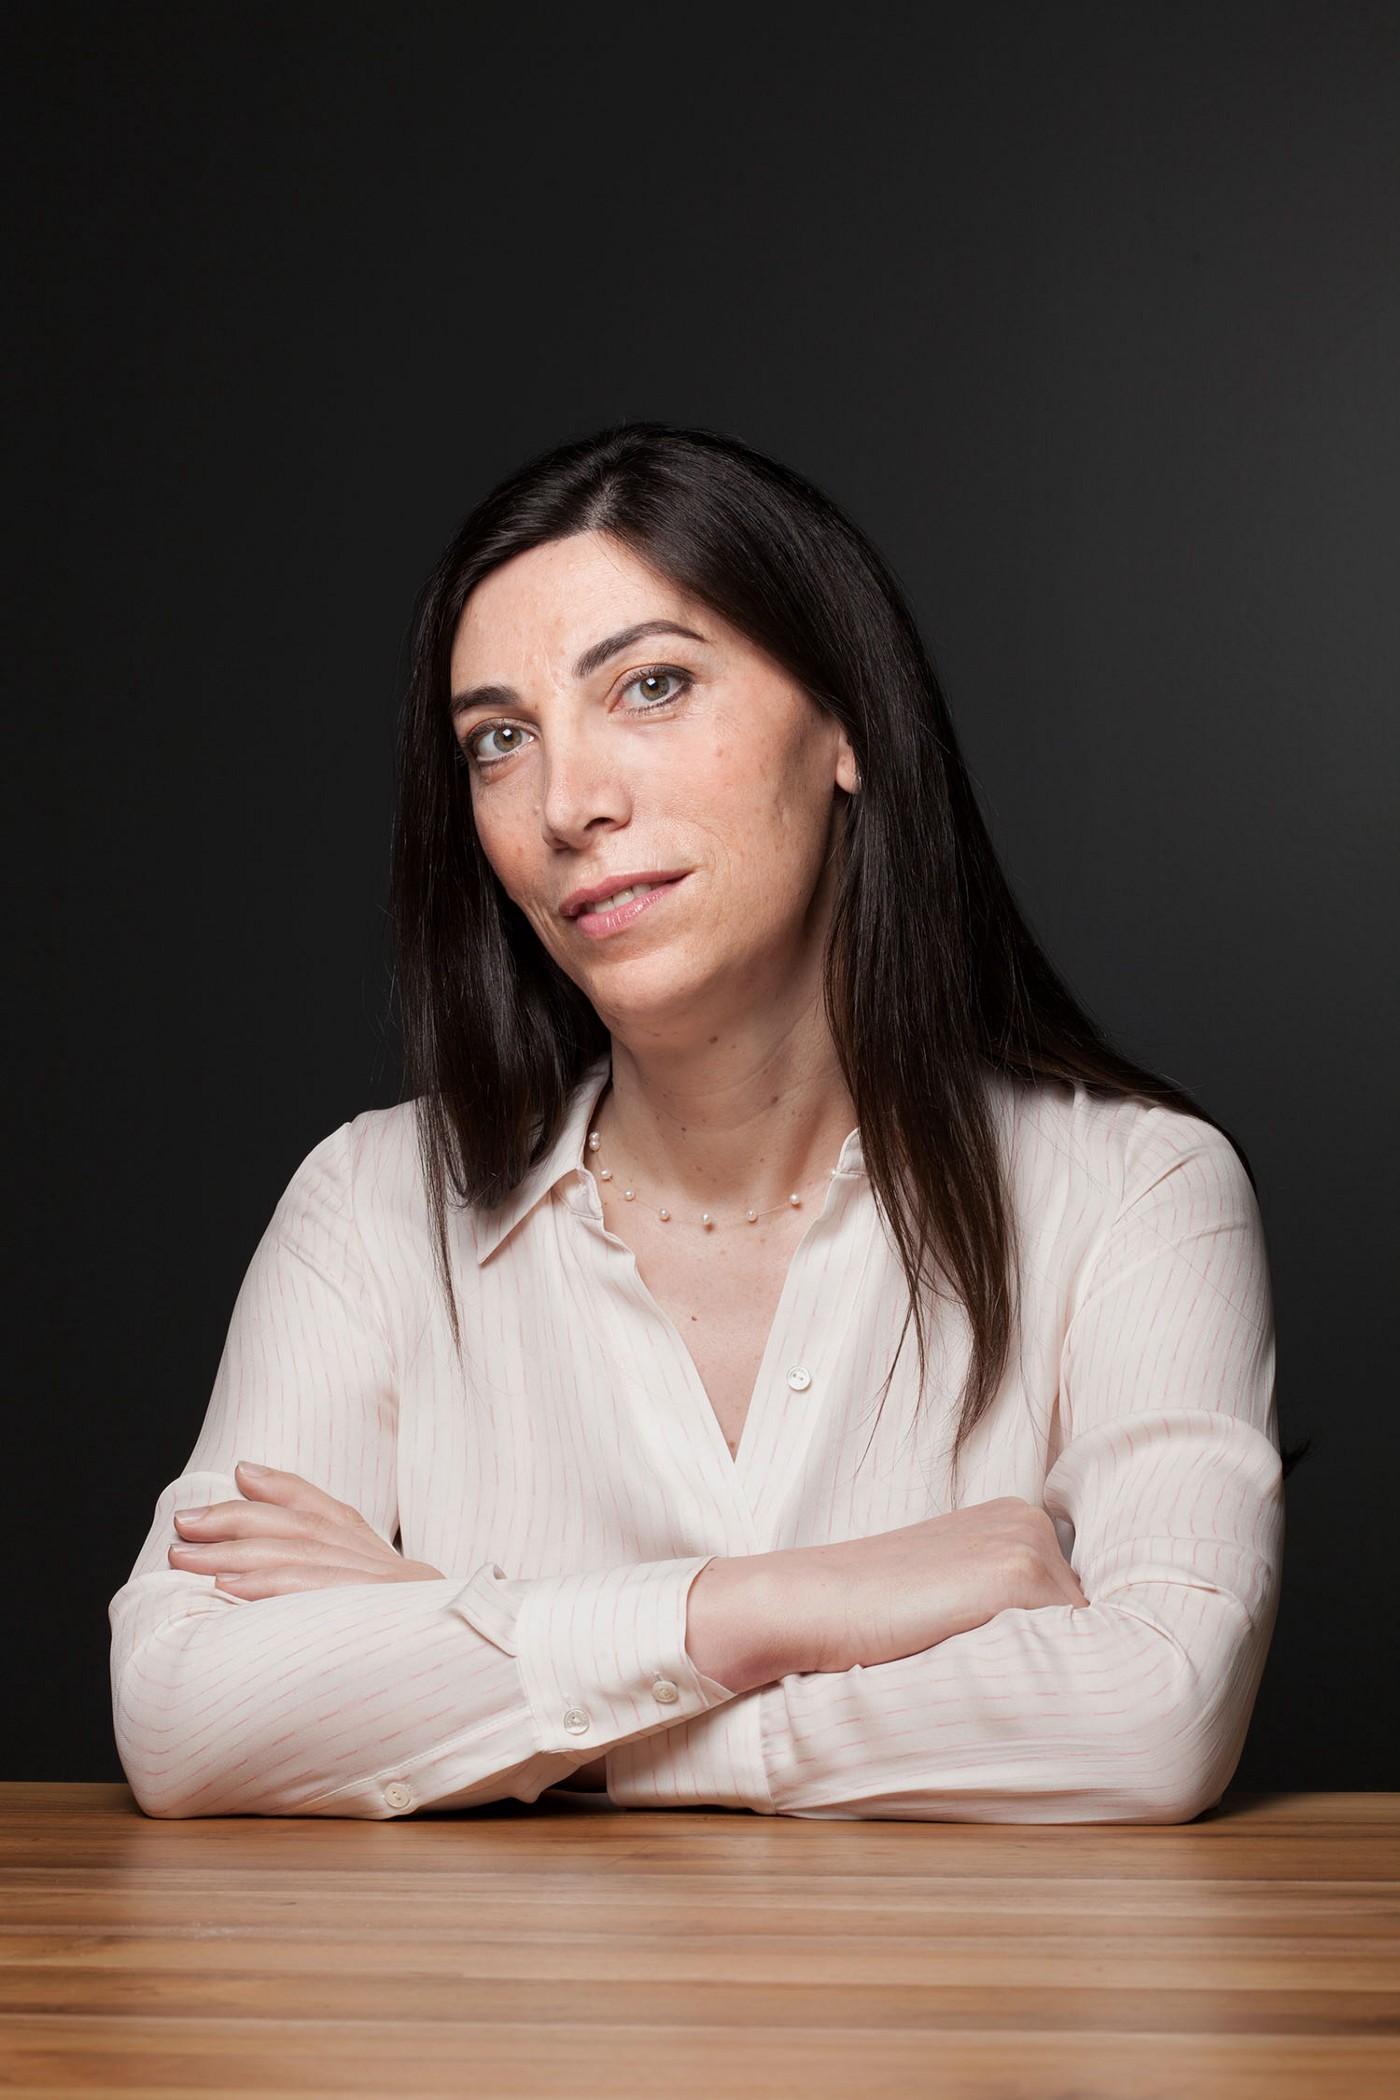 A portrait photo of Emily Leproust seated with her arms crossed at a wooden table. Leproust is CEO of Twist Bioscience.